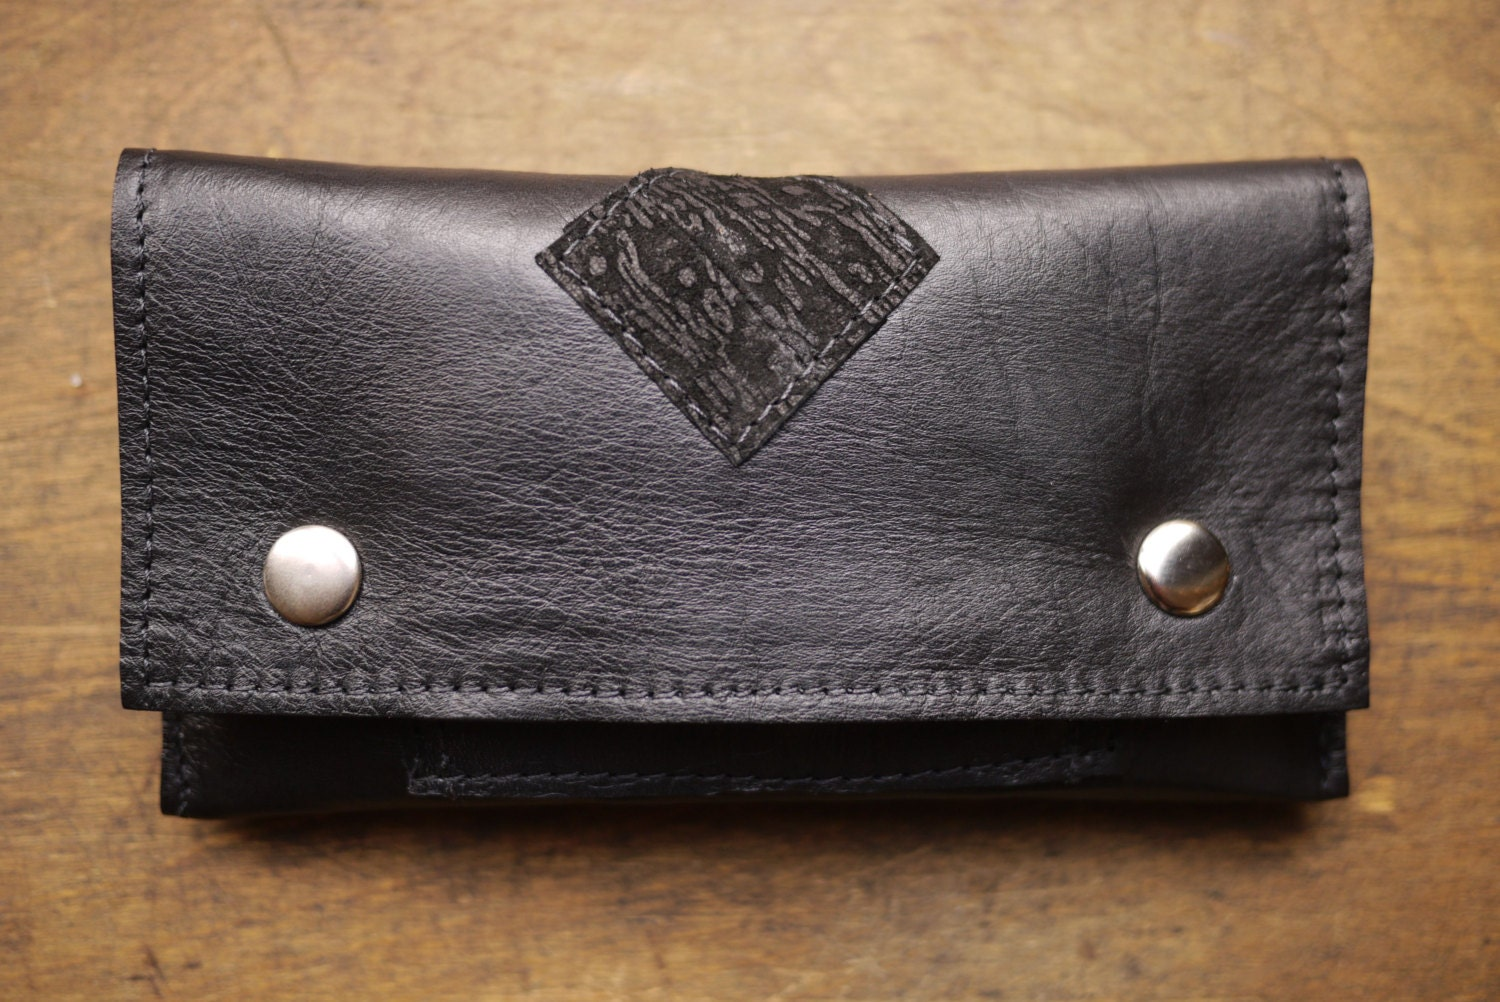 One-of-a-kind UPCYCLED Black Leather Tobacco Pouch with Diamond Detail